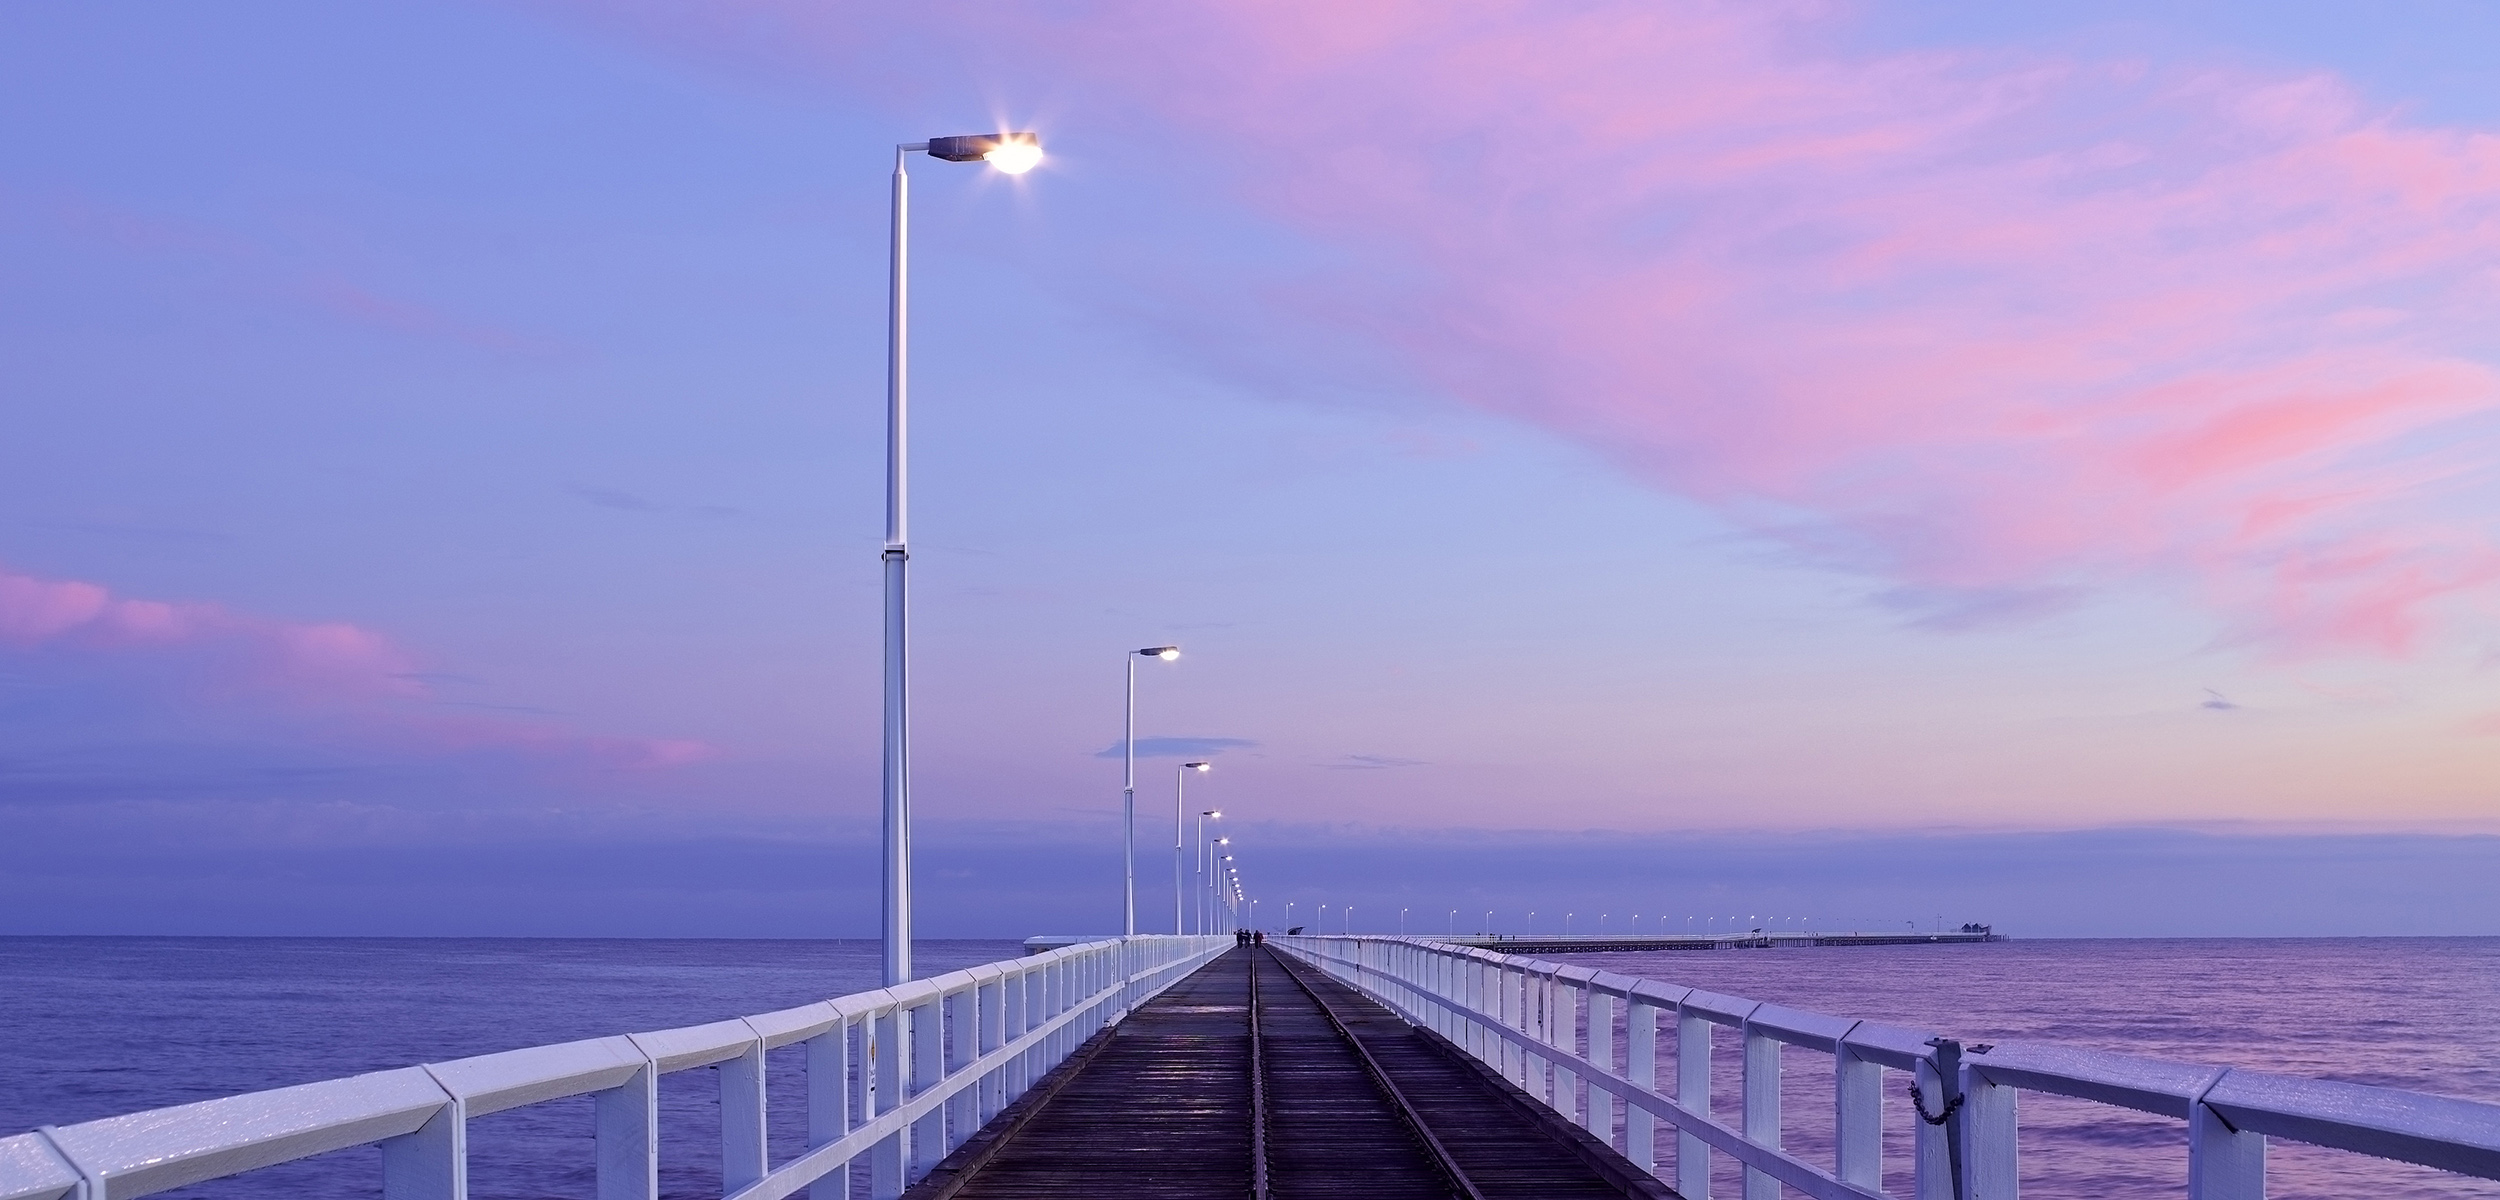 The long wooden Busselton Jetty stretches into the distance with its lampoles lighted up, Geographe Bay in Australia